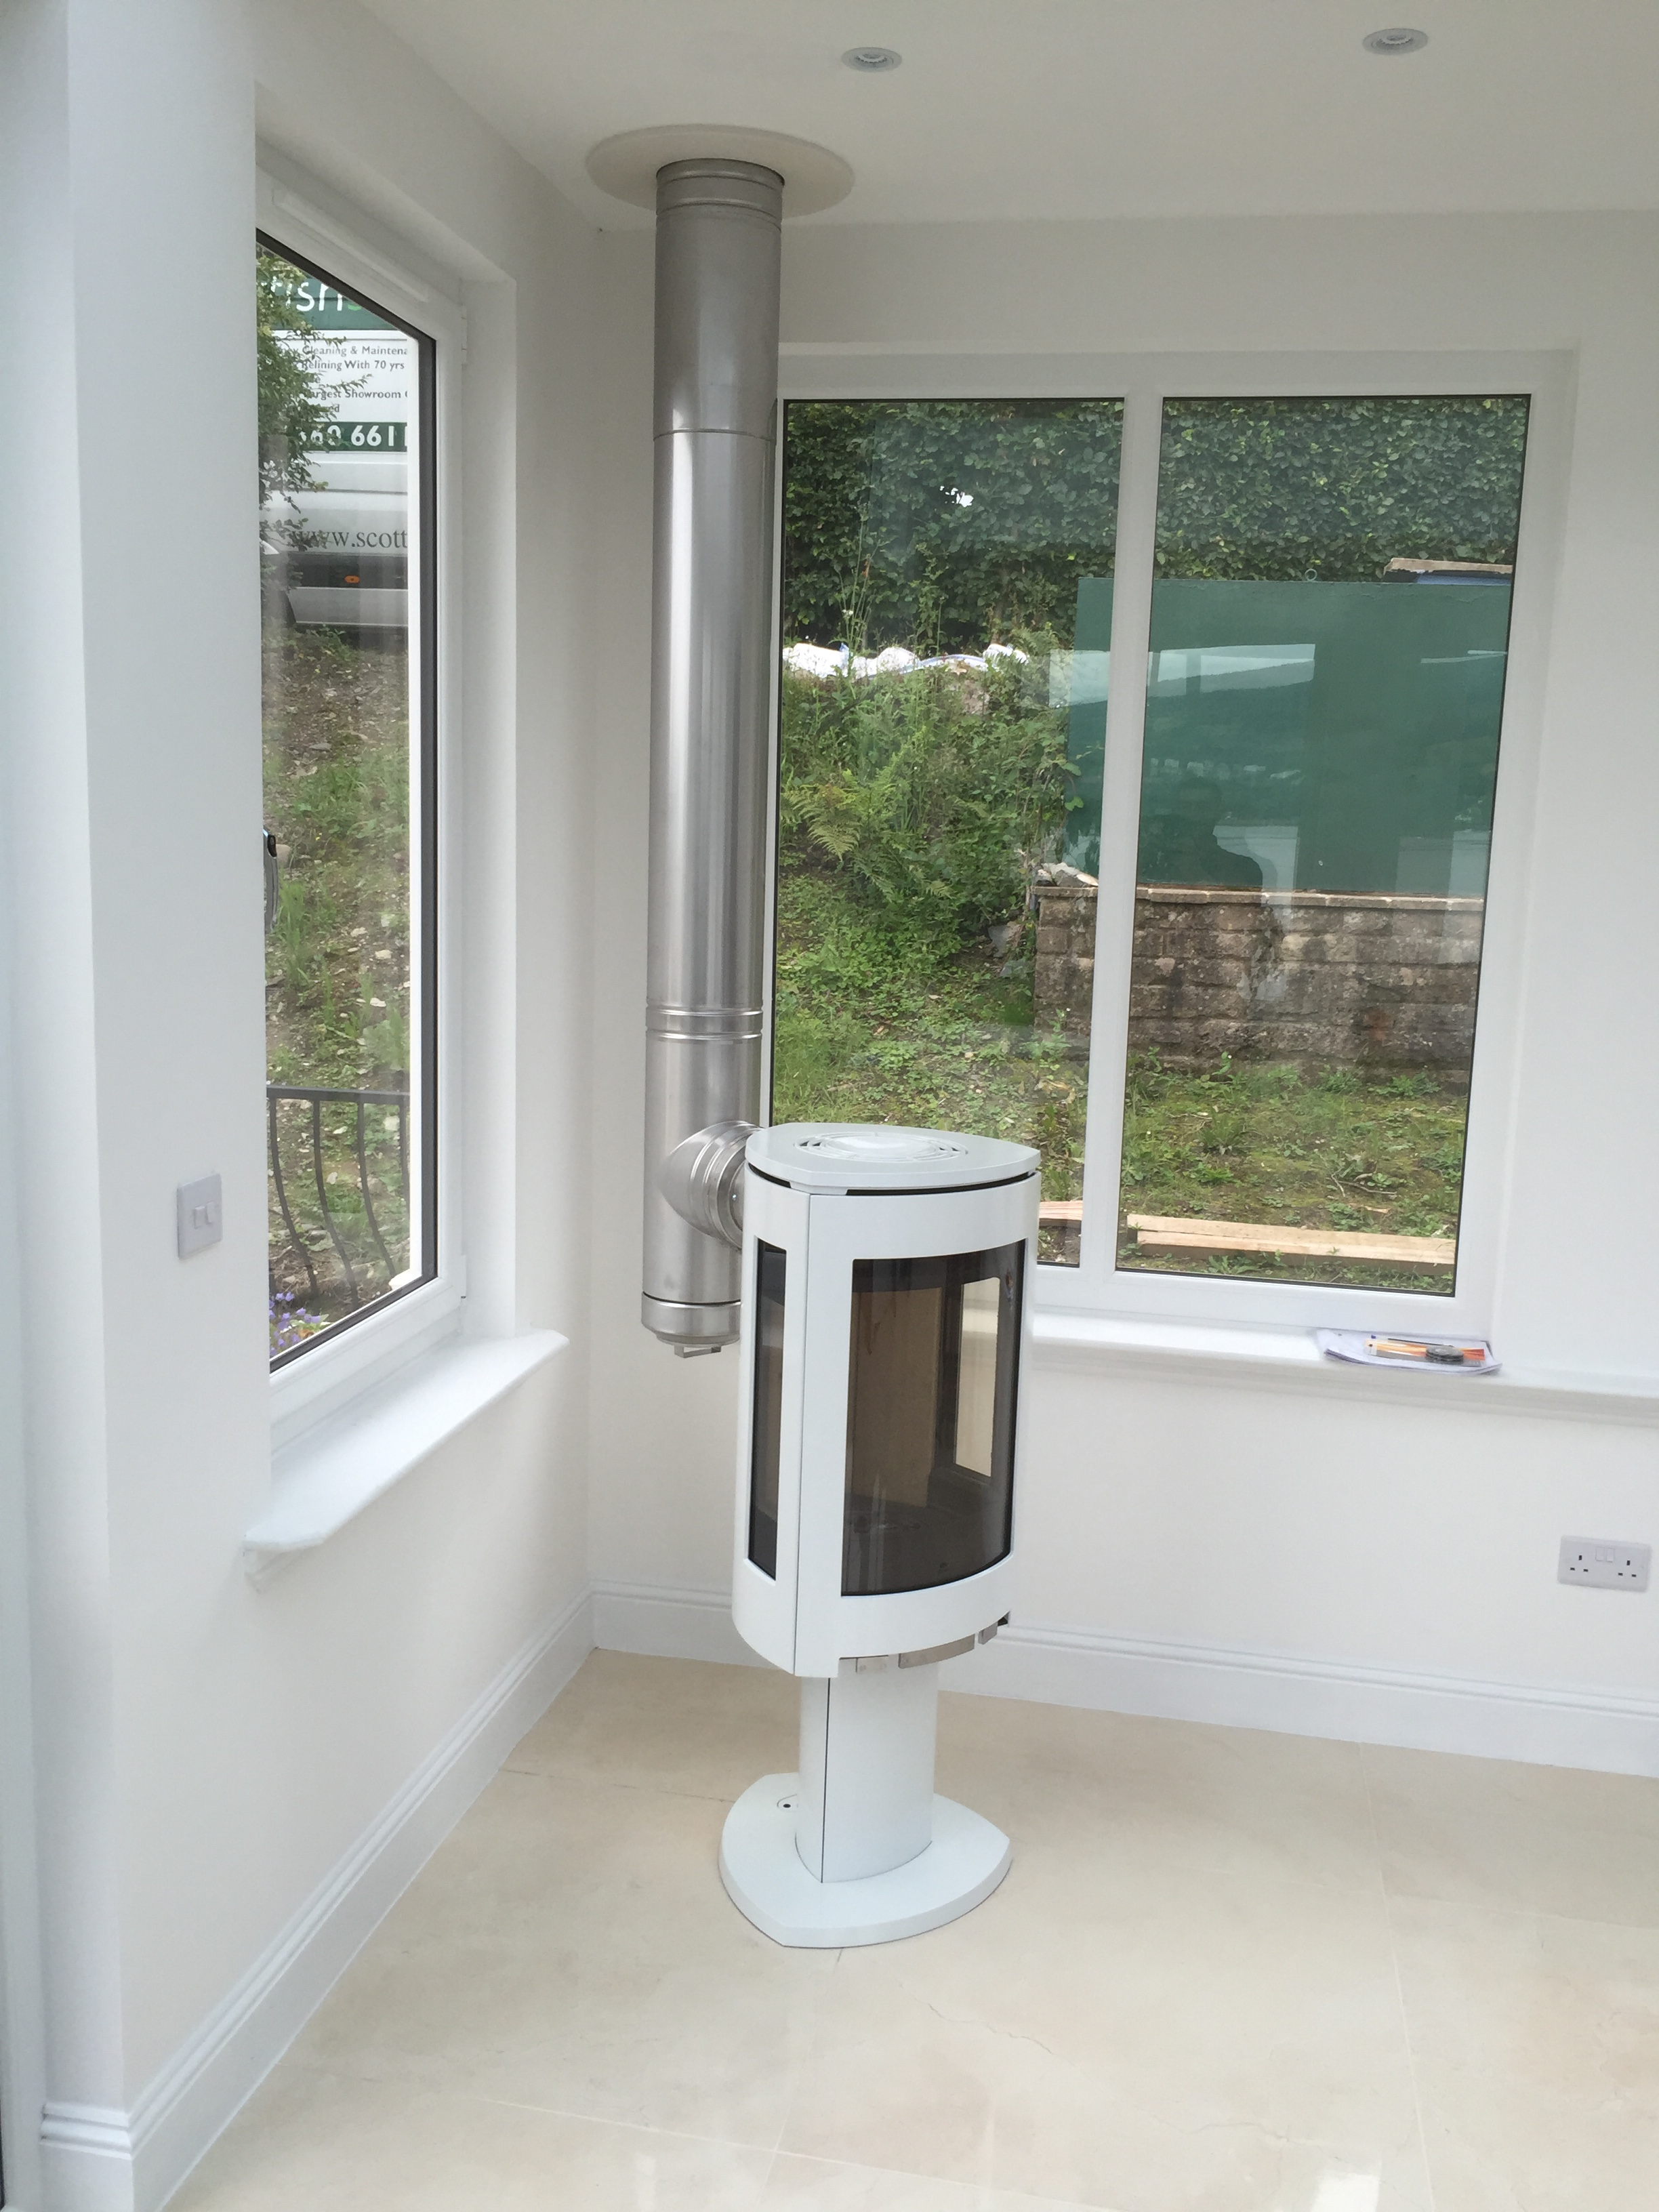 Jotul F373 White & MF Flue (Rear Exit)